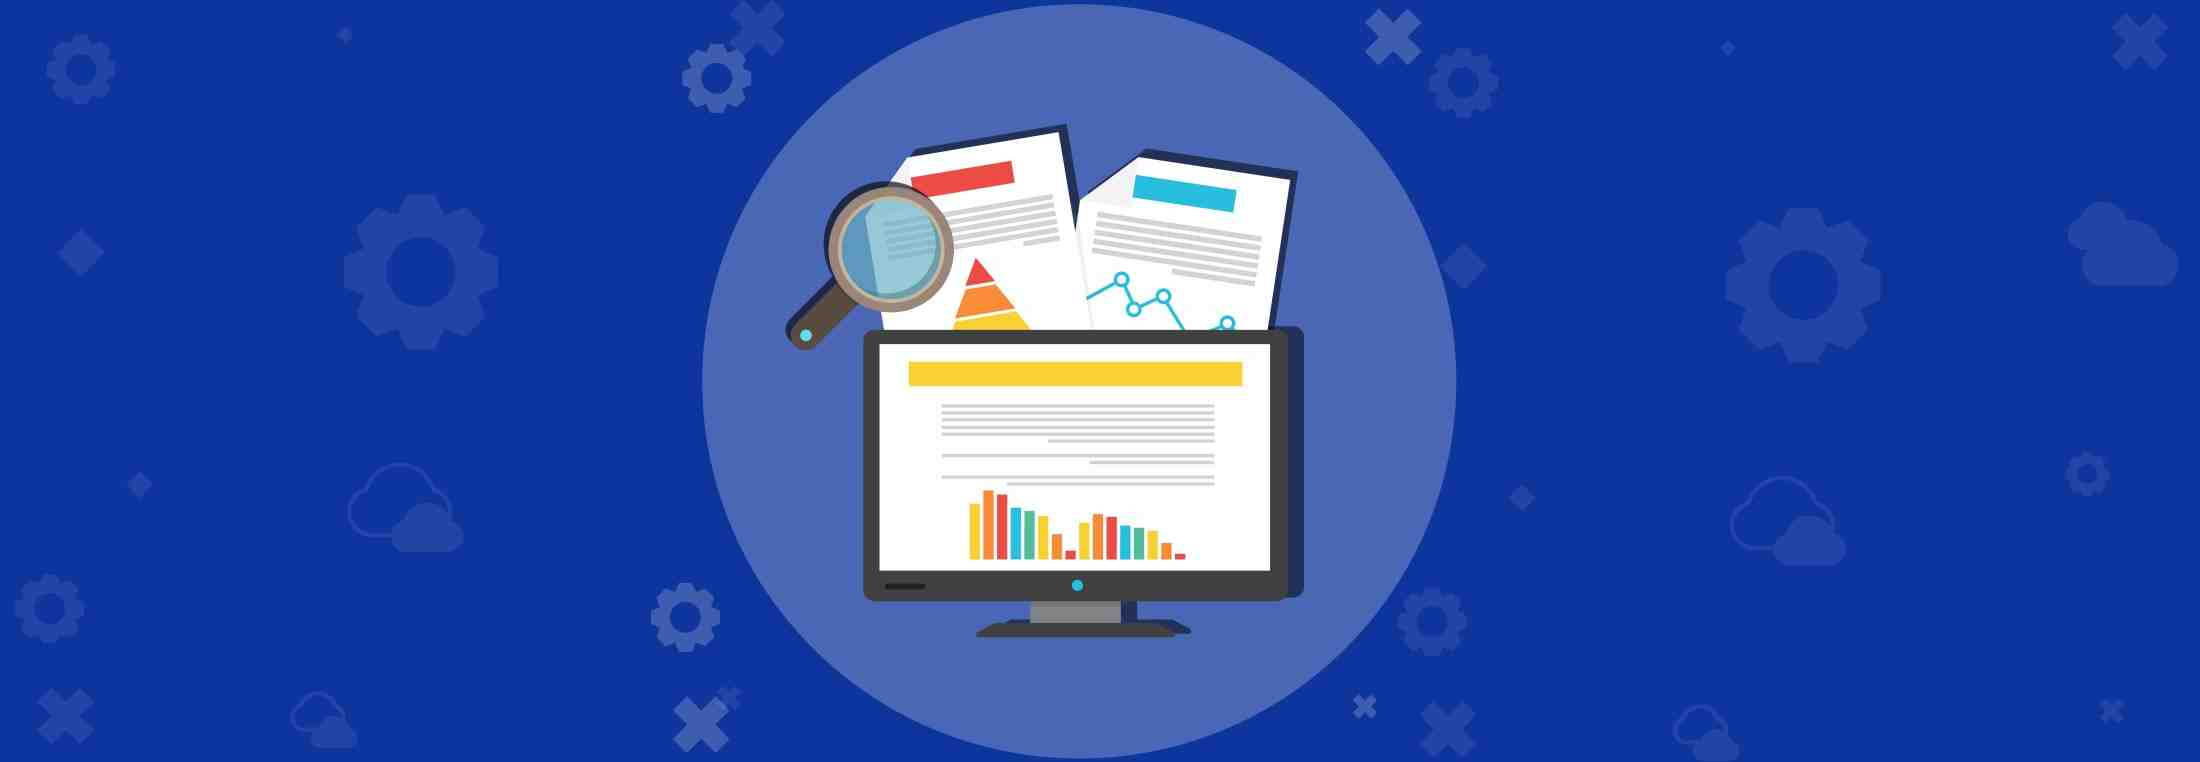 What is data analytics in business intelligence?